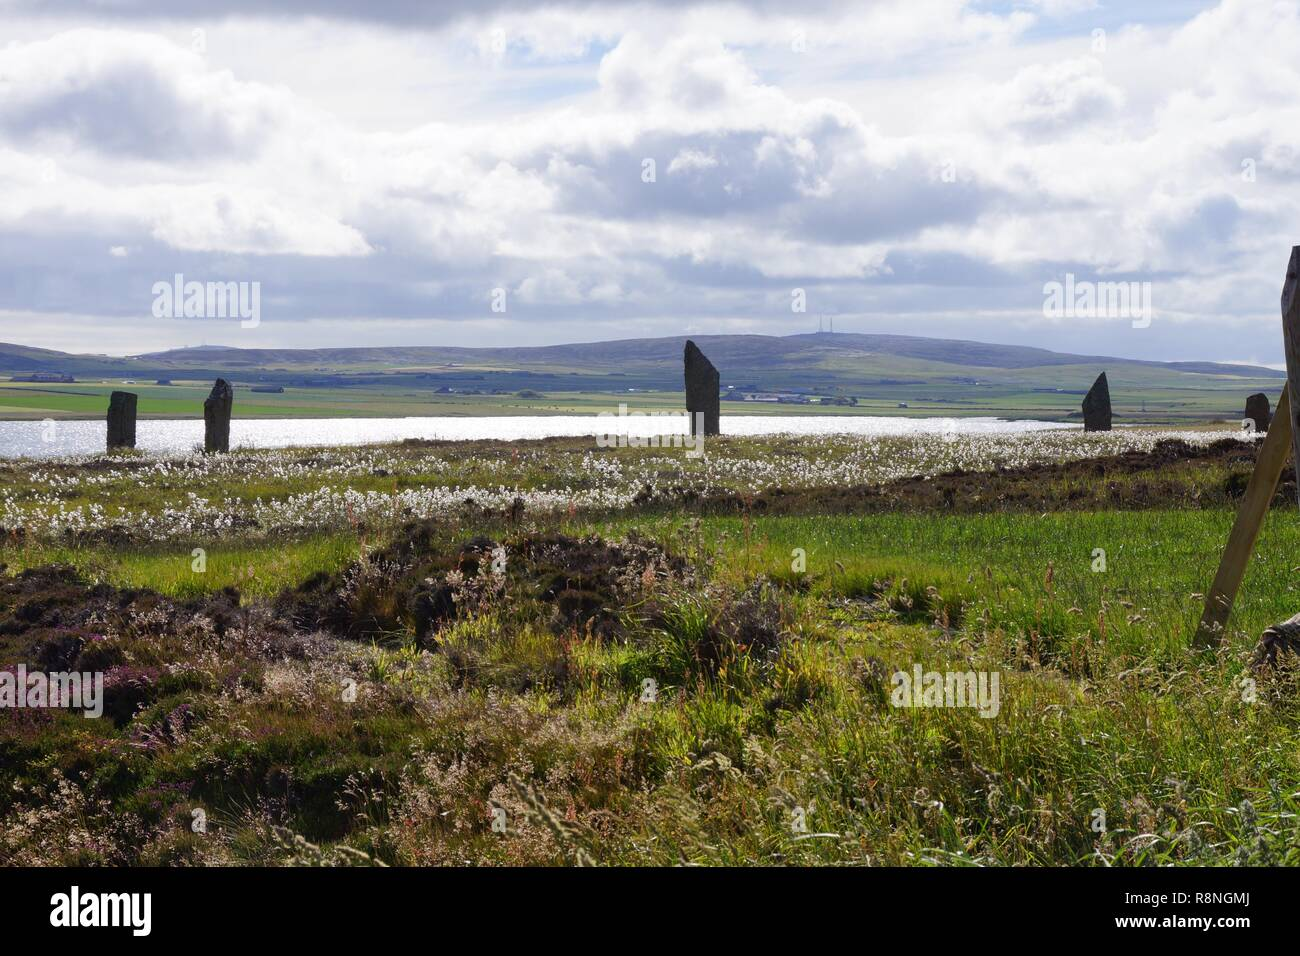 Skara Brae ancient village located on the Orkney Islands. On the way from Kirkwall we stopped at the standing stone called Ring of Brodgar. - Stock Image